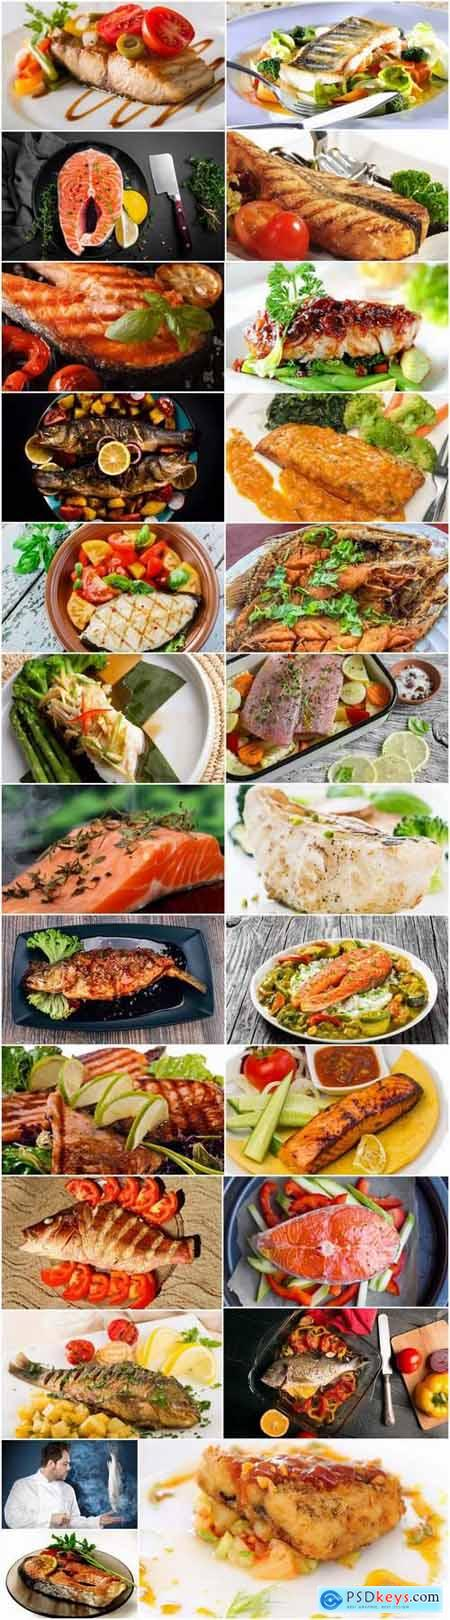 Steak grilled fish salmon tuna snapper 25 HQ Jpeg